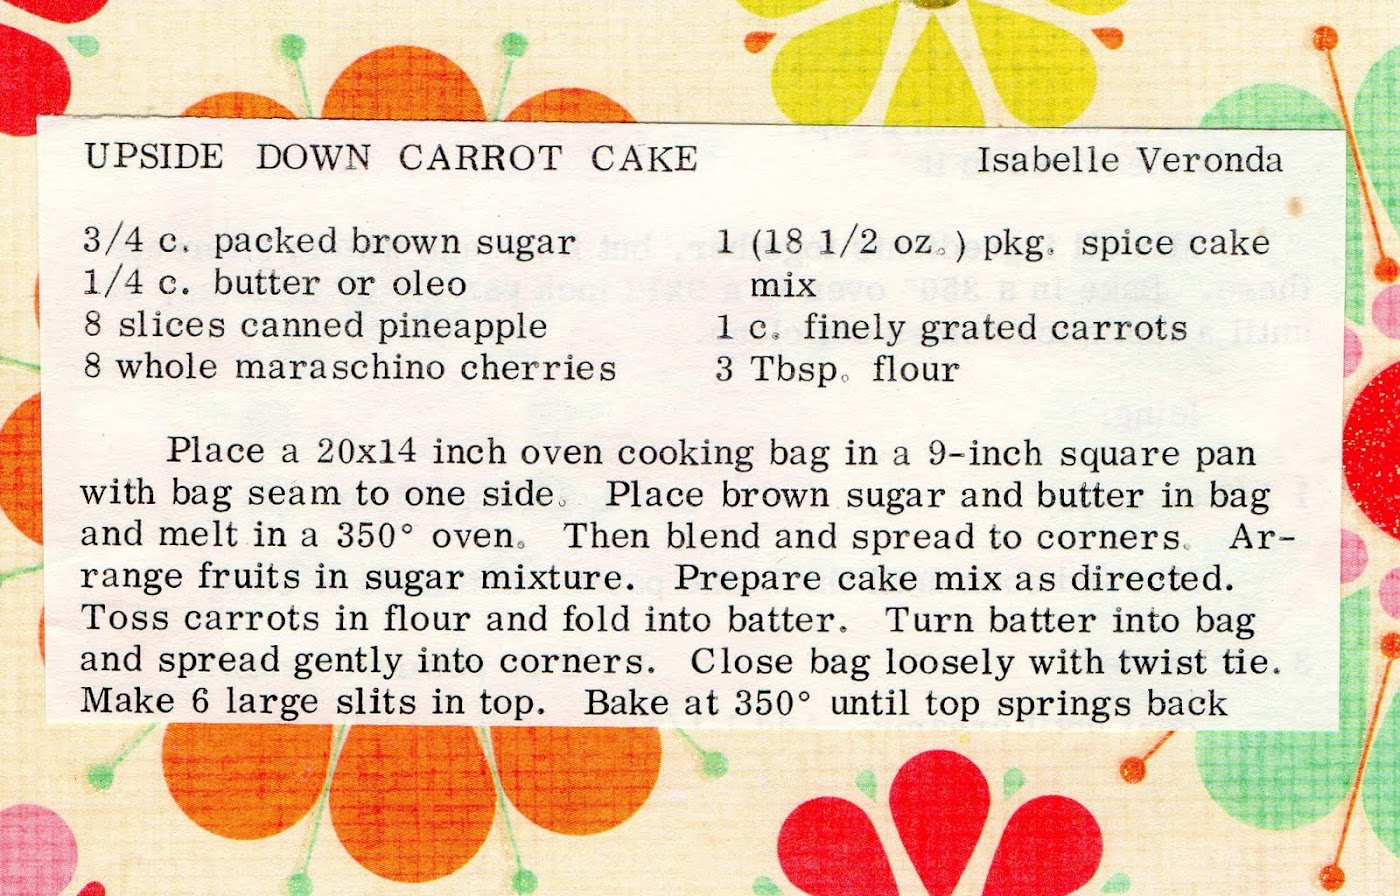 Upside Down Carrot Cake (quick recipe)